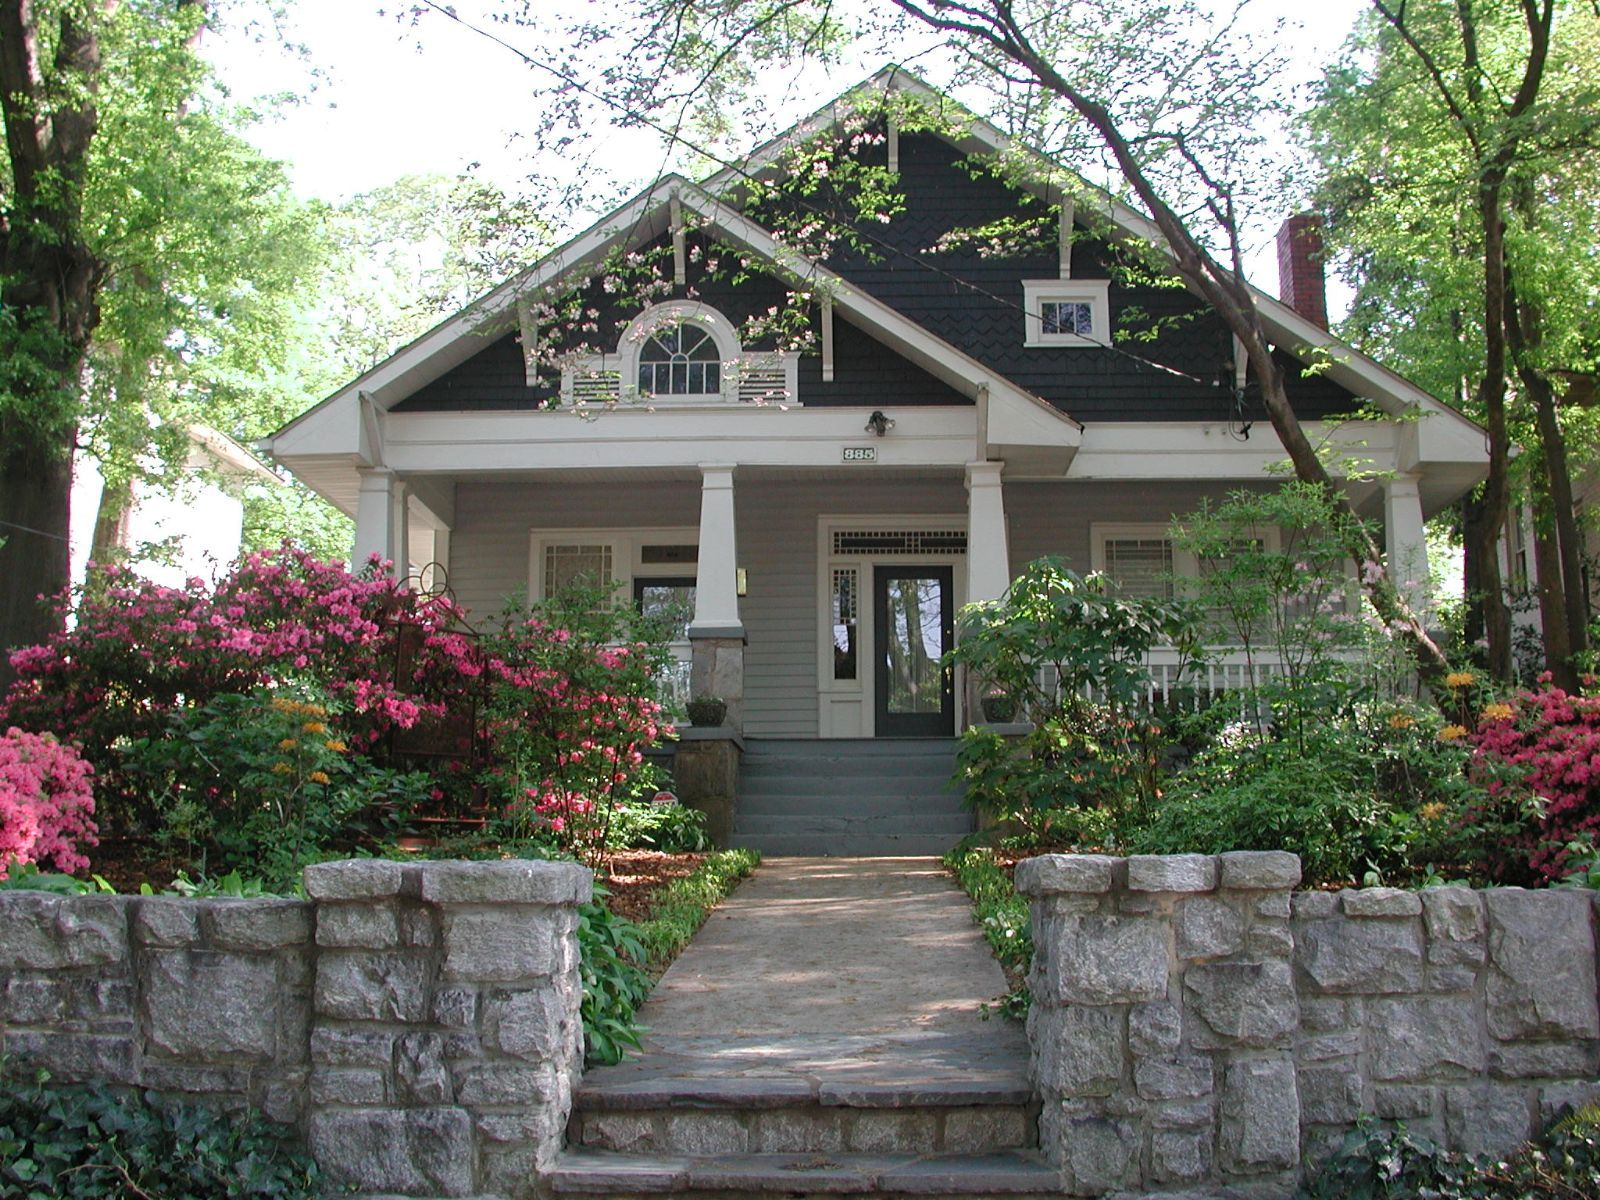 Awesome Atlanta Craftsman Homes #6: New Listing: Craftsman Bungalow In Virginia Highland - The Zac Team, RE/MAX